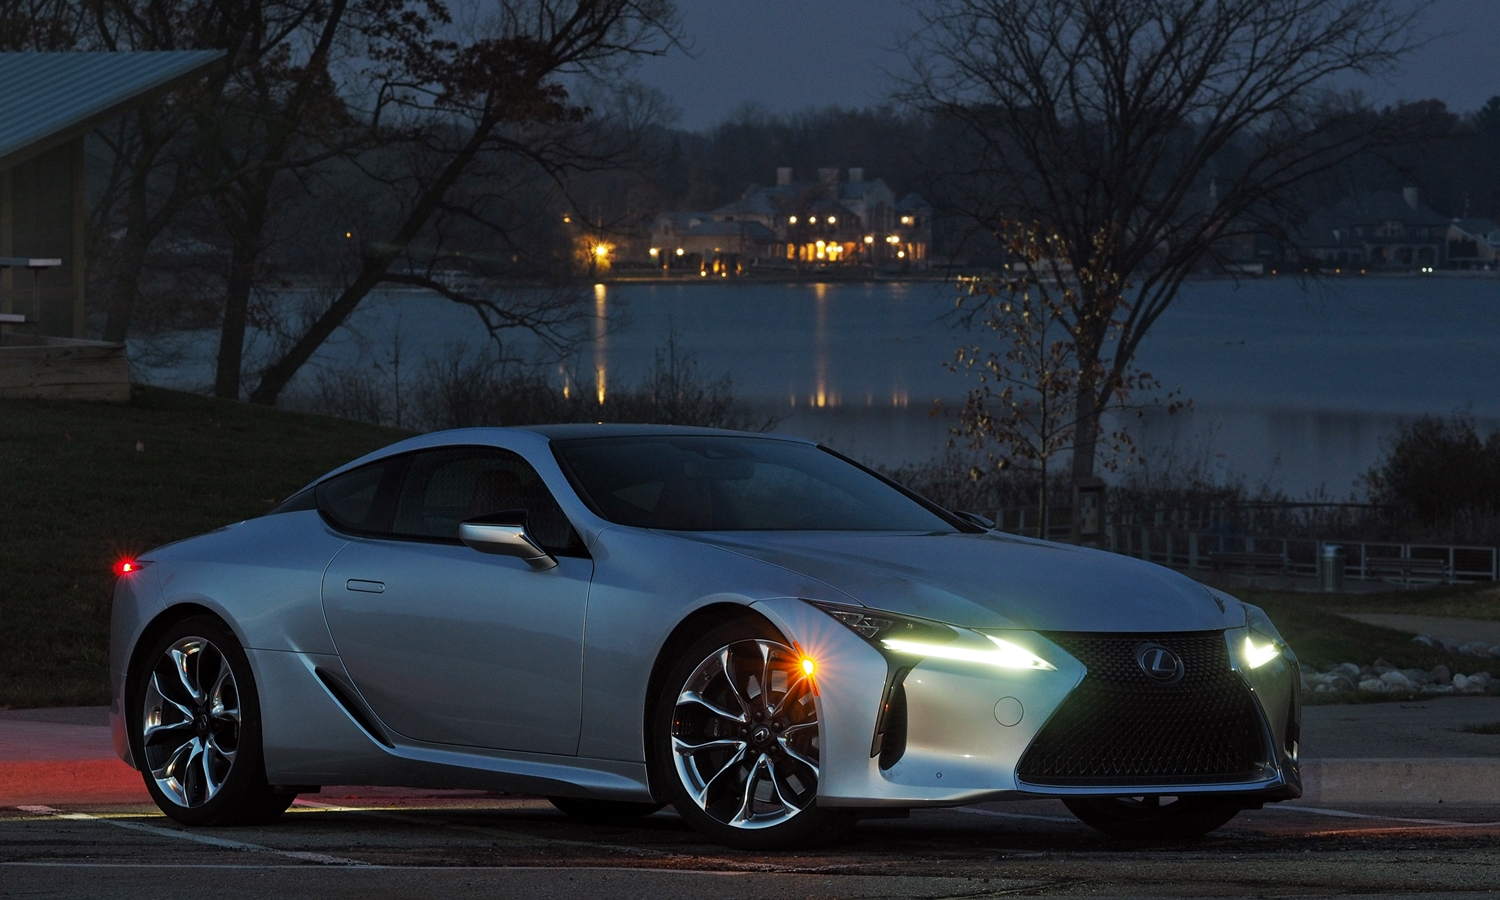 Lexus LC Photos: Lexus LC 500 front quarter view dusk